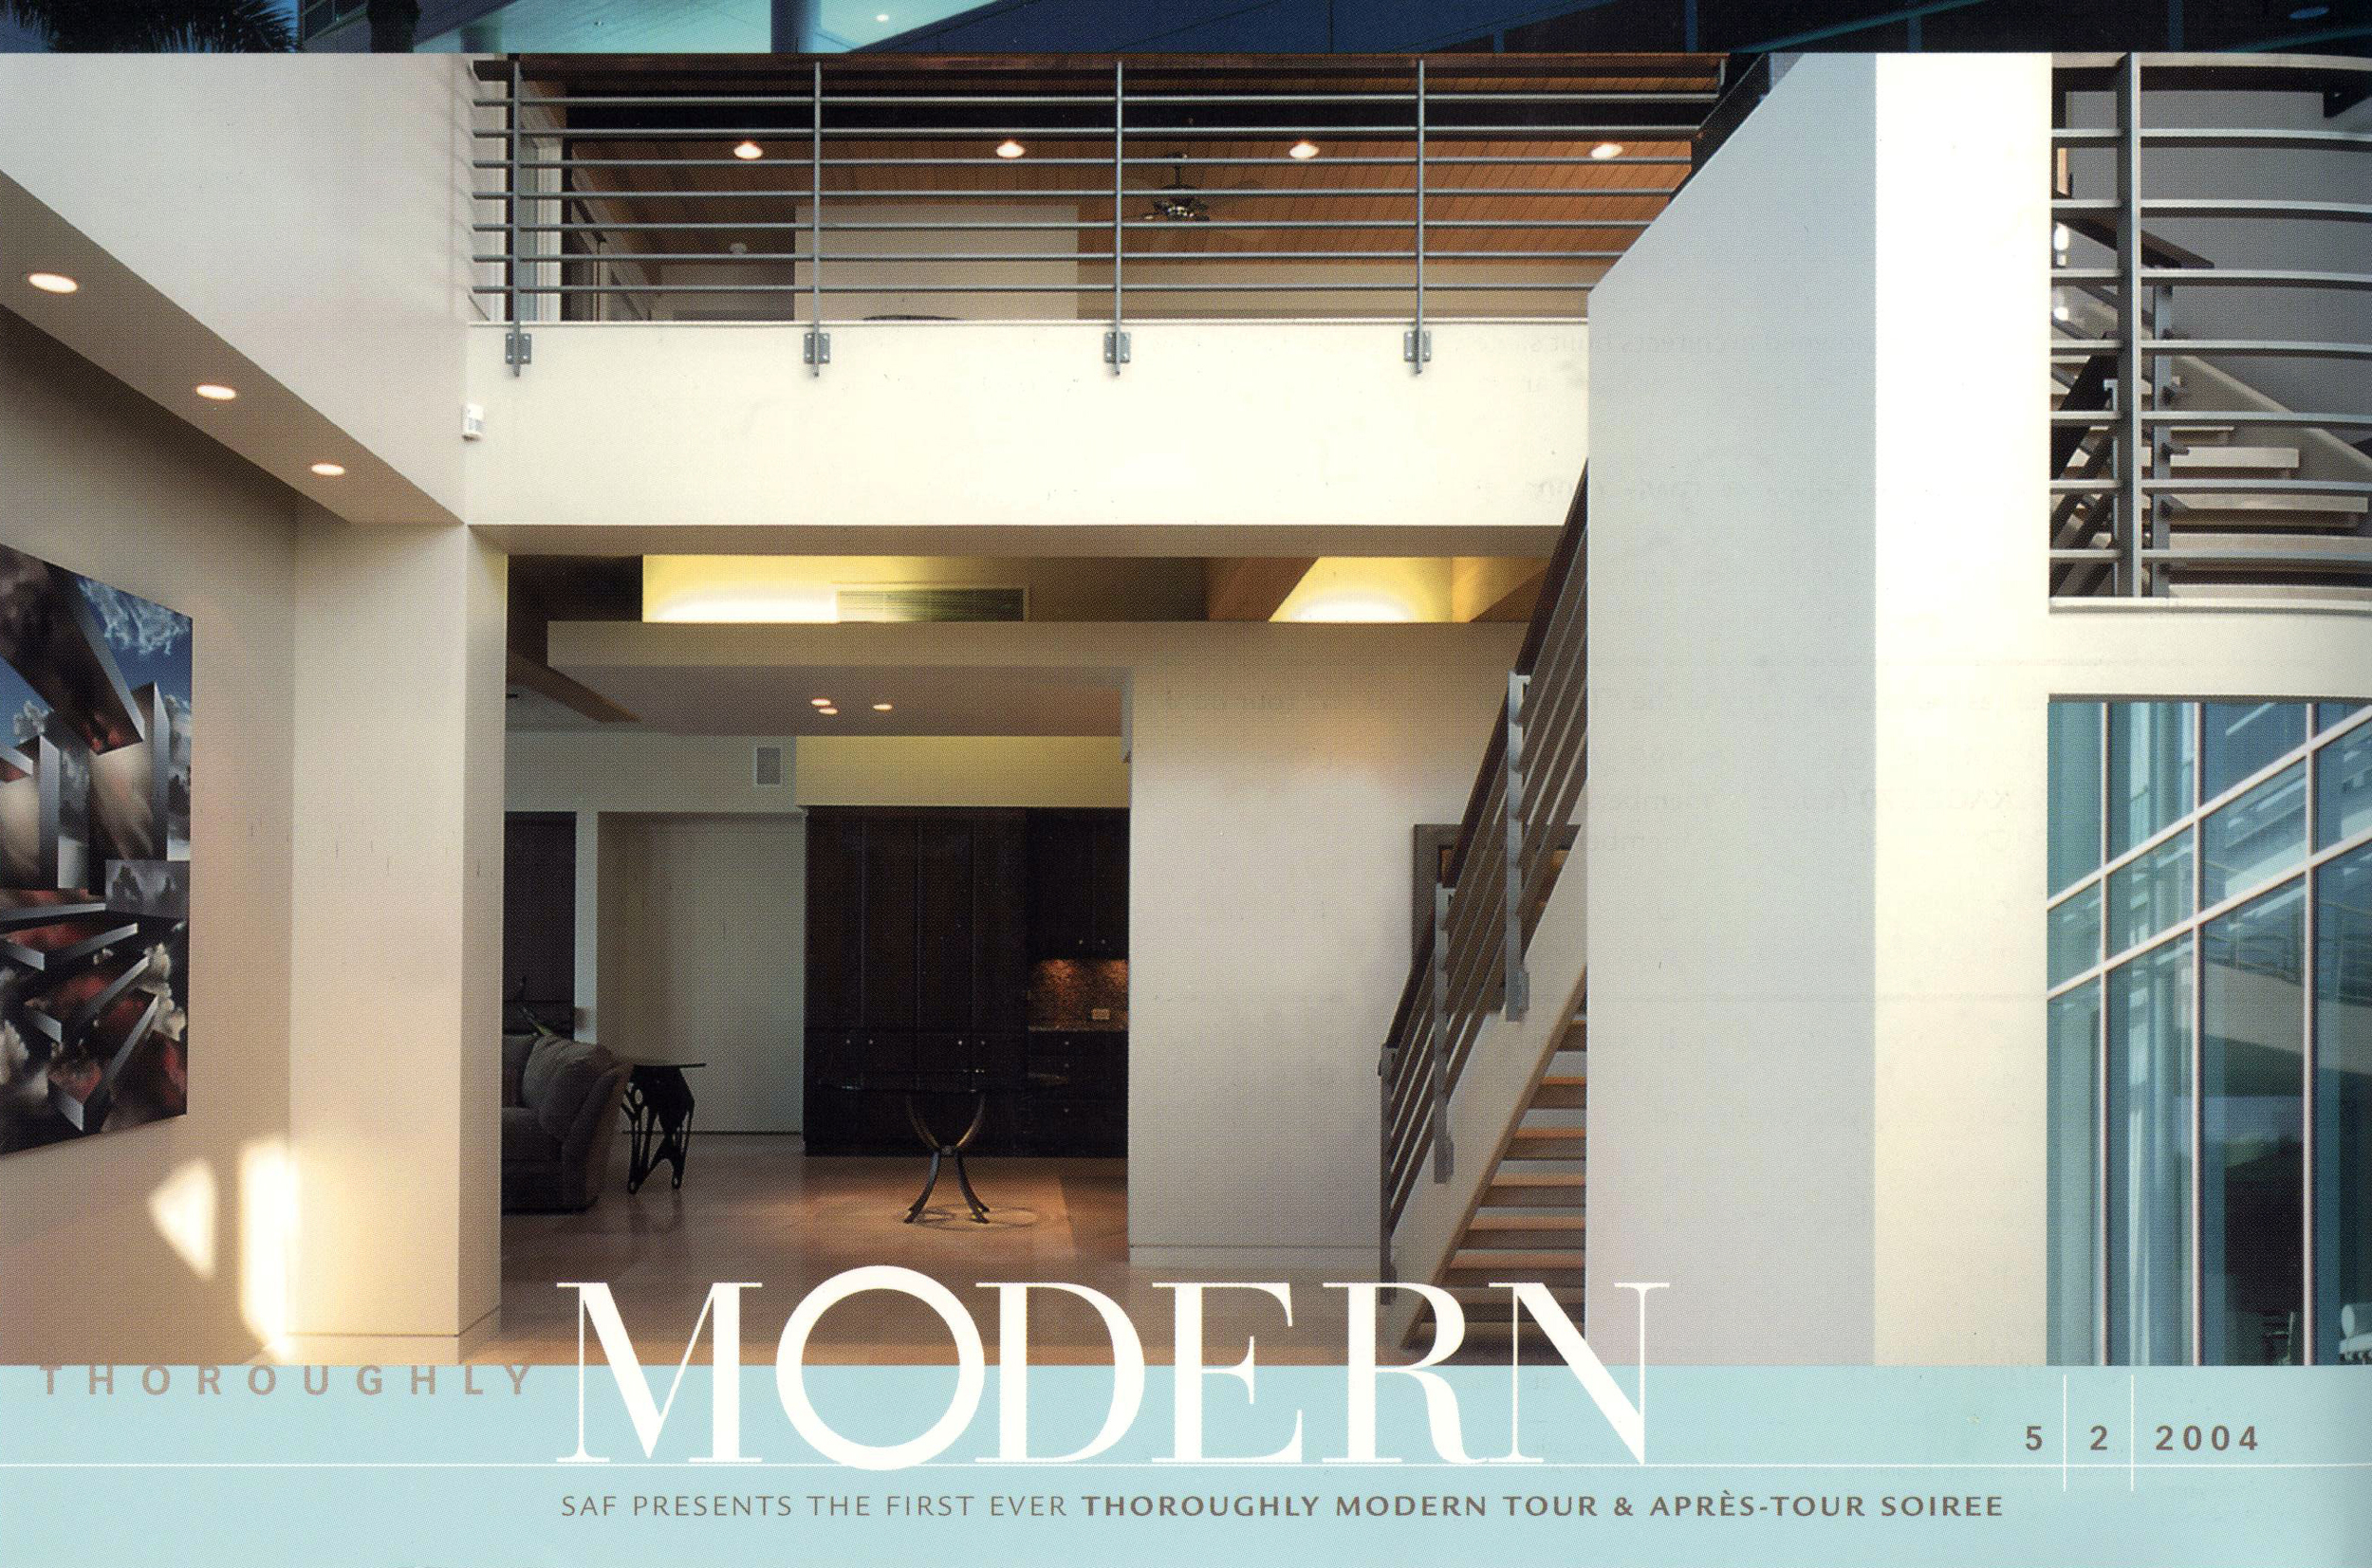 Thouroughly Modern Tour (Publications) 001 SC-16.jpg